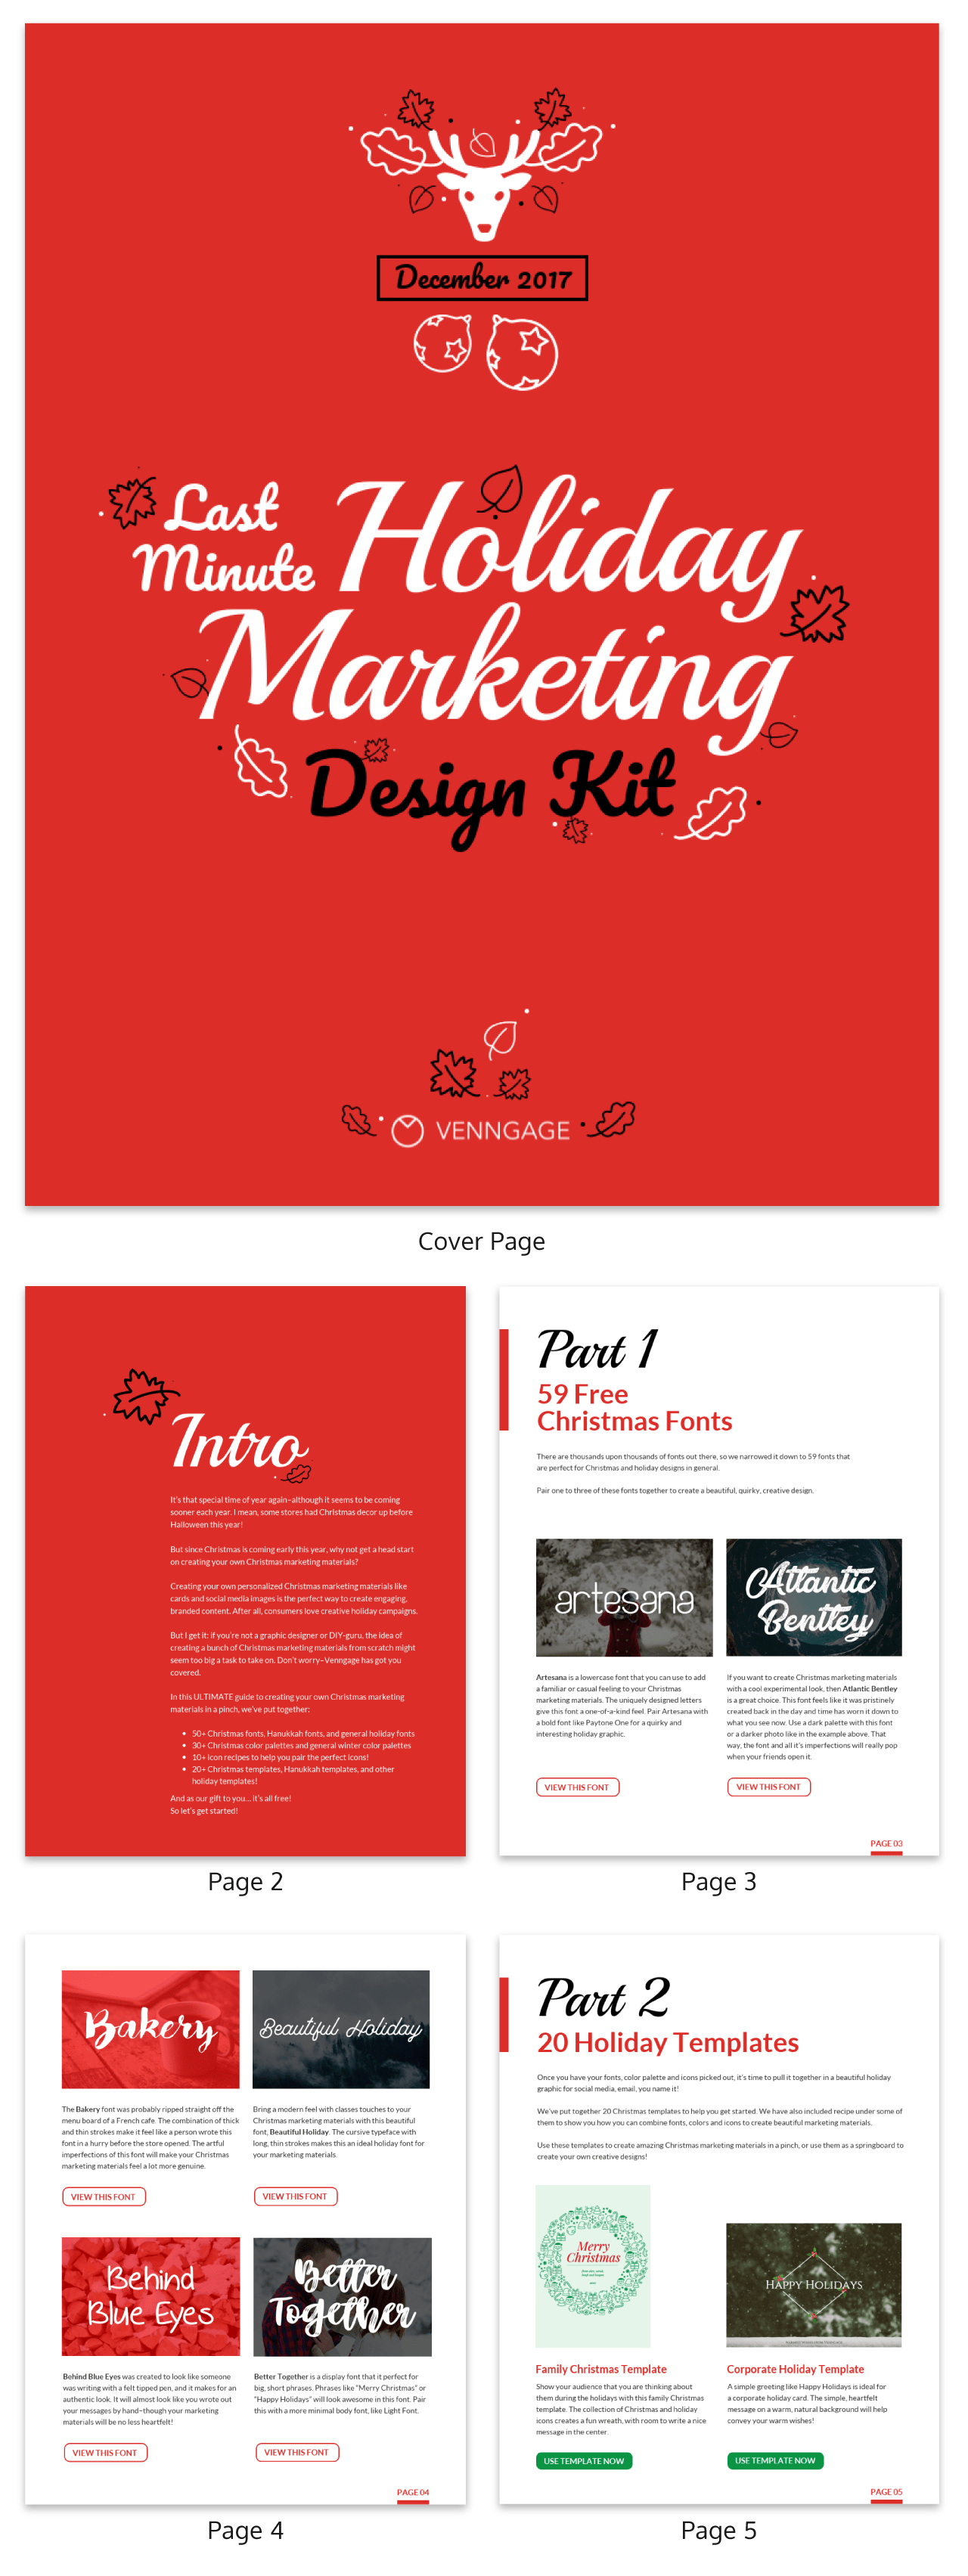 Pageturning White Paper Examples And Design Tips  Venngage White Paper Examples